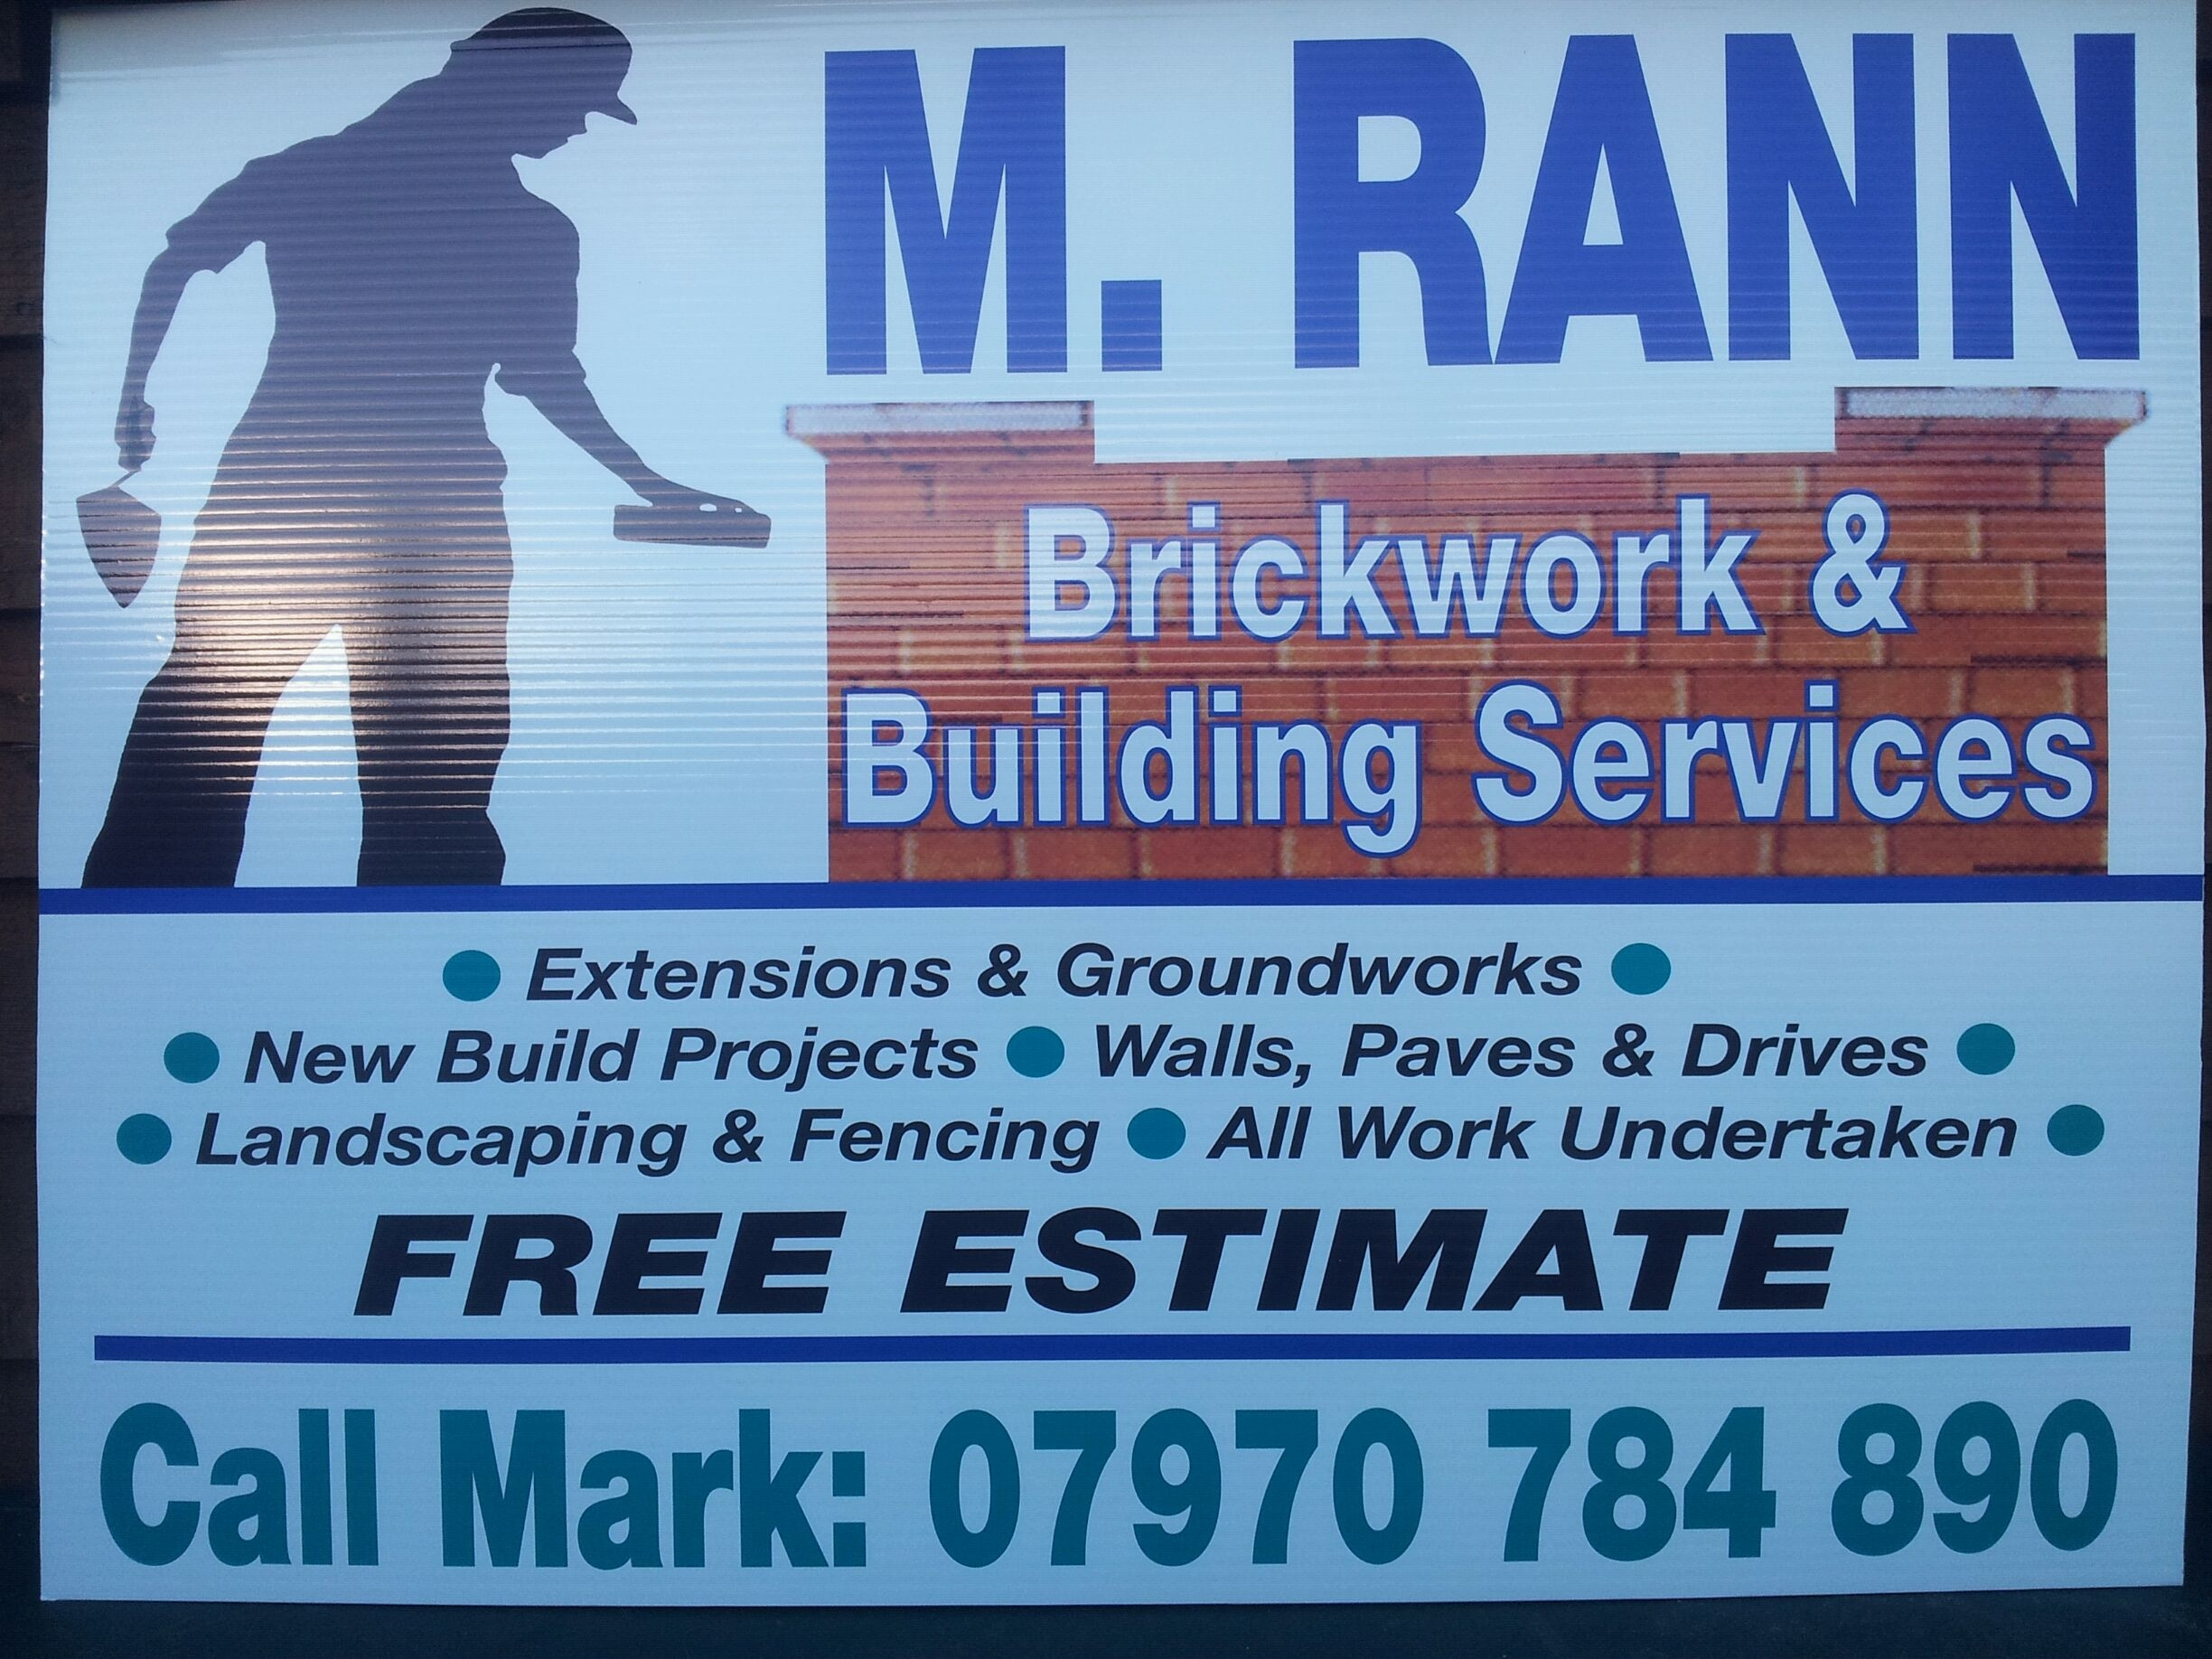 M.RANN BRICKWORK